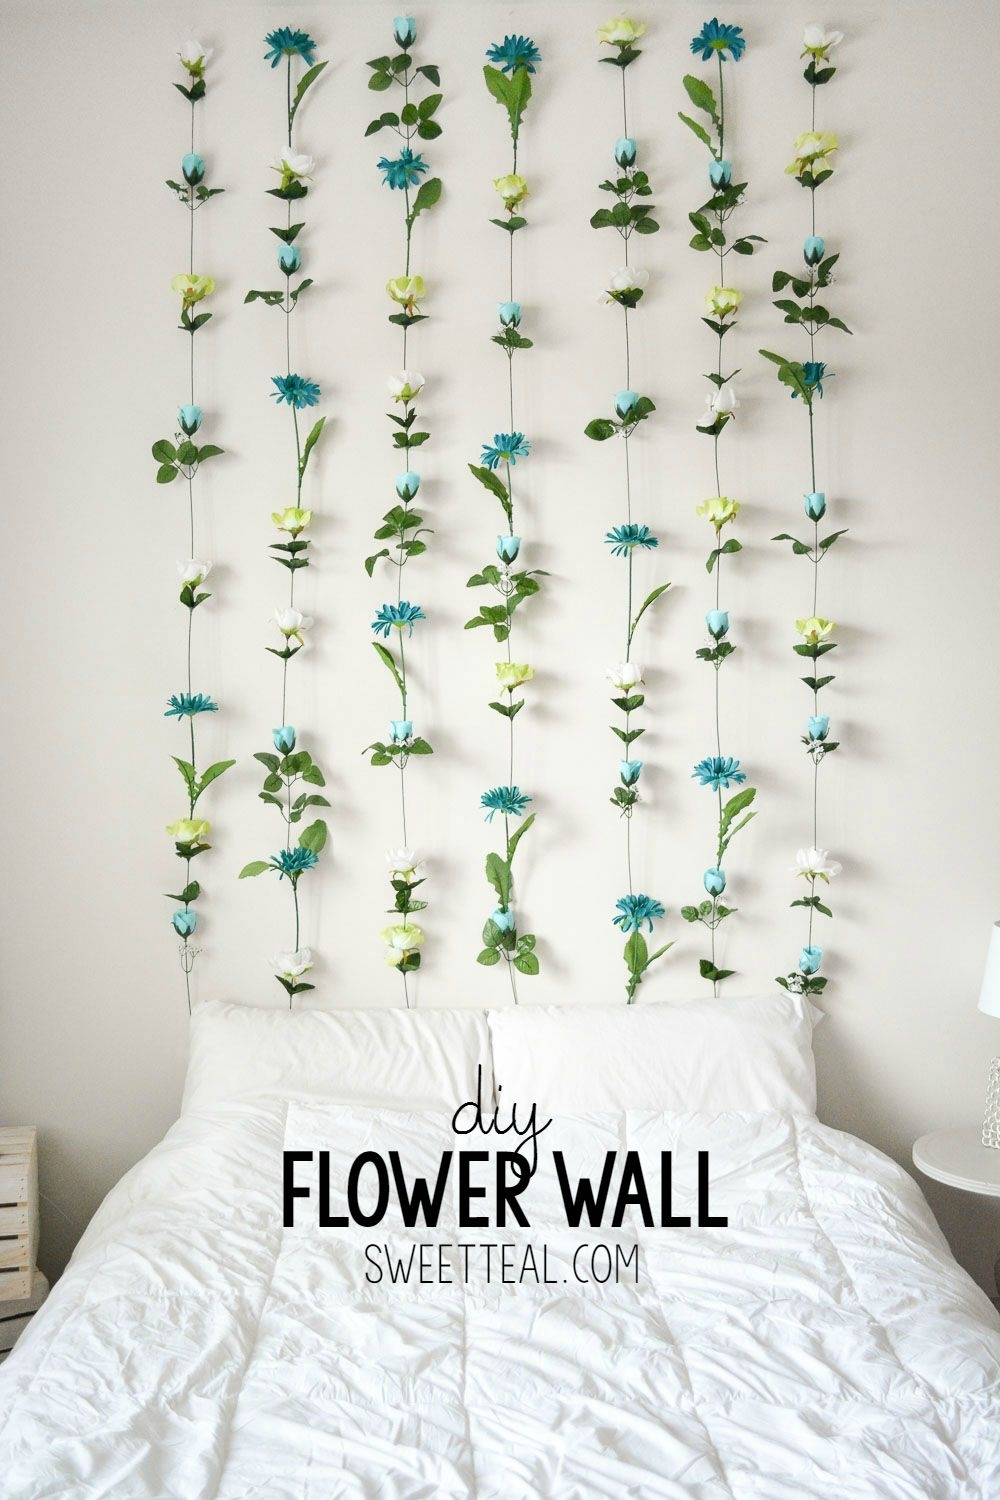 Diy Flower Wall // Headboard // Home Decor | Wall Headboard, Diy With Regard To Most Recently Released Flowers Wall Accents (View 4 of 15)